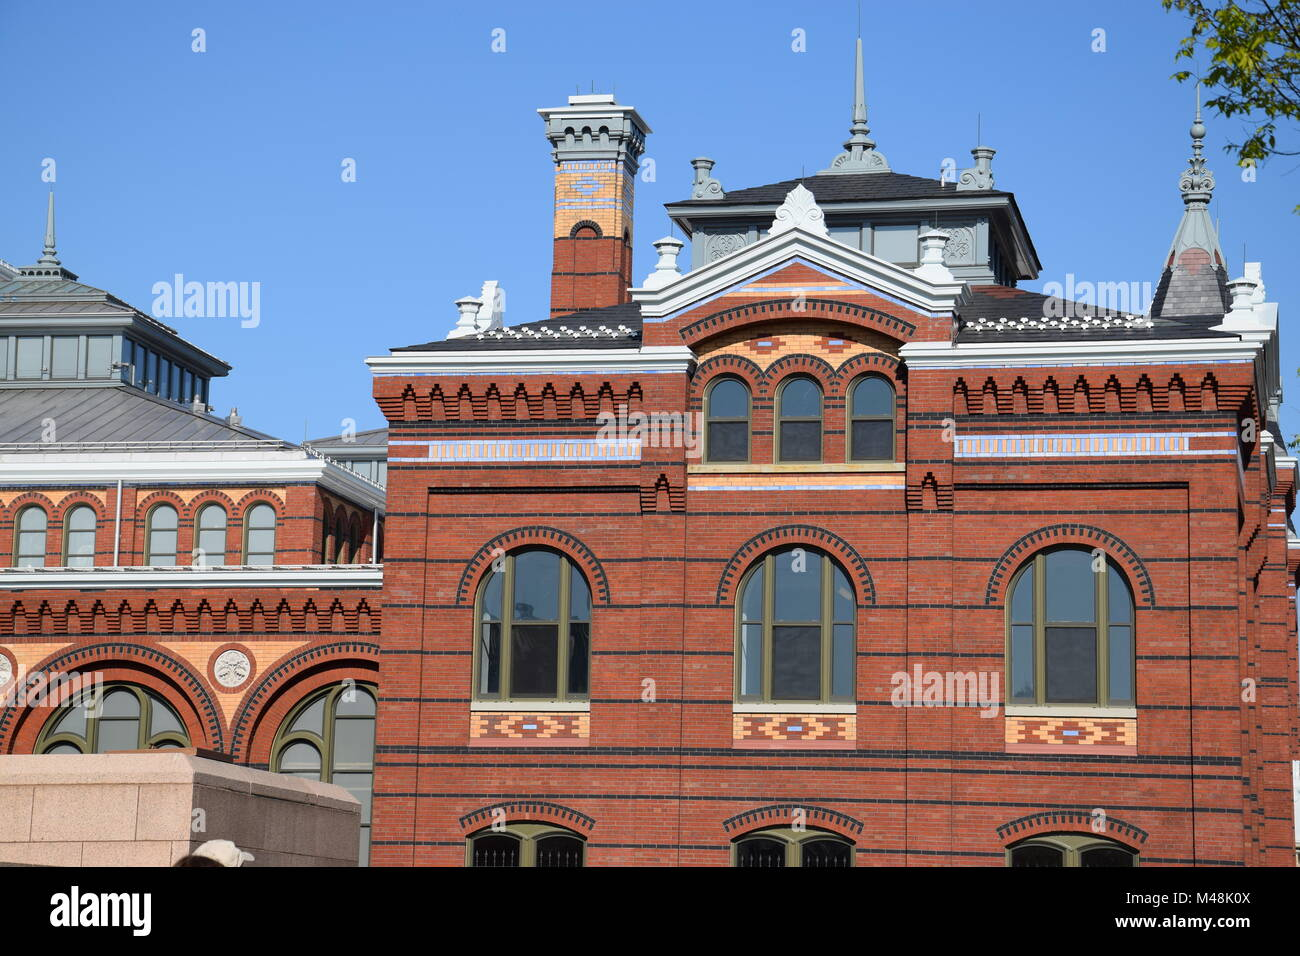 The Smithsonian Arts and Industries Building in Washington, DC - Stock Image